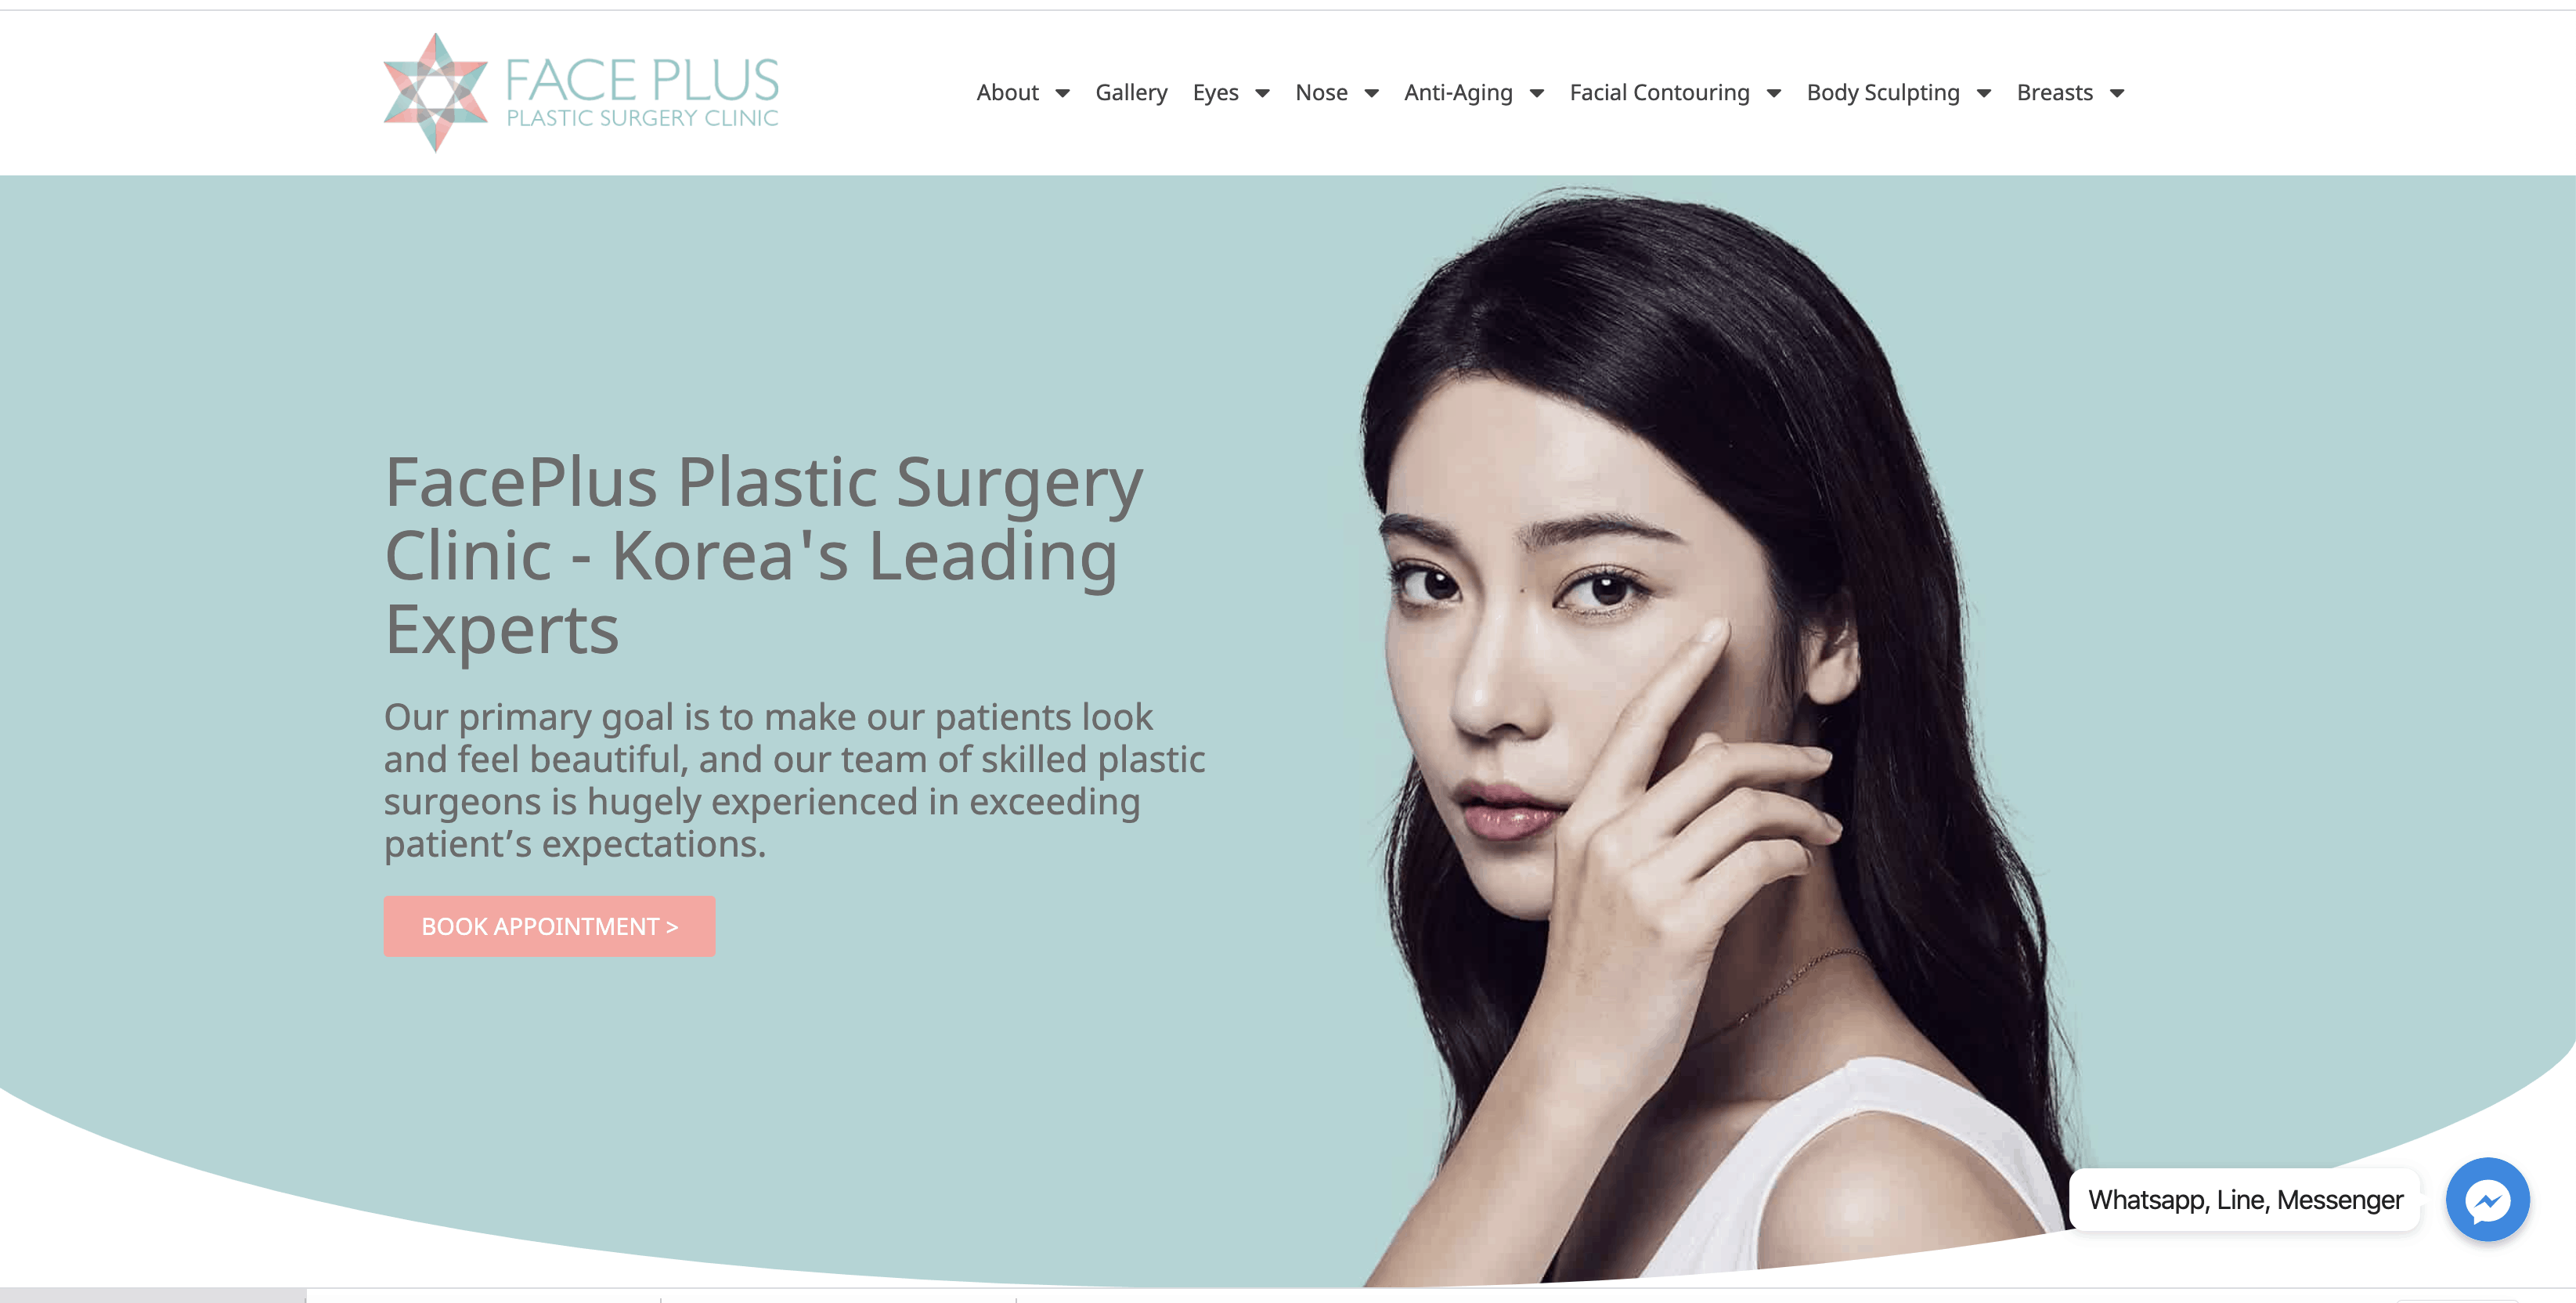 Face Plus Clinic Seoul South Korea - Cosmetic Surgery Tourism Travel Thoughts With Covid 19